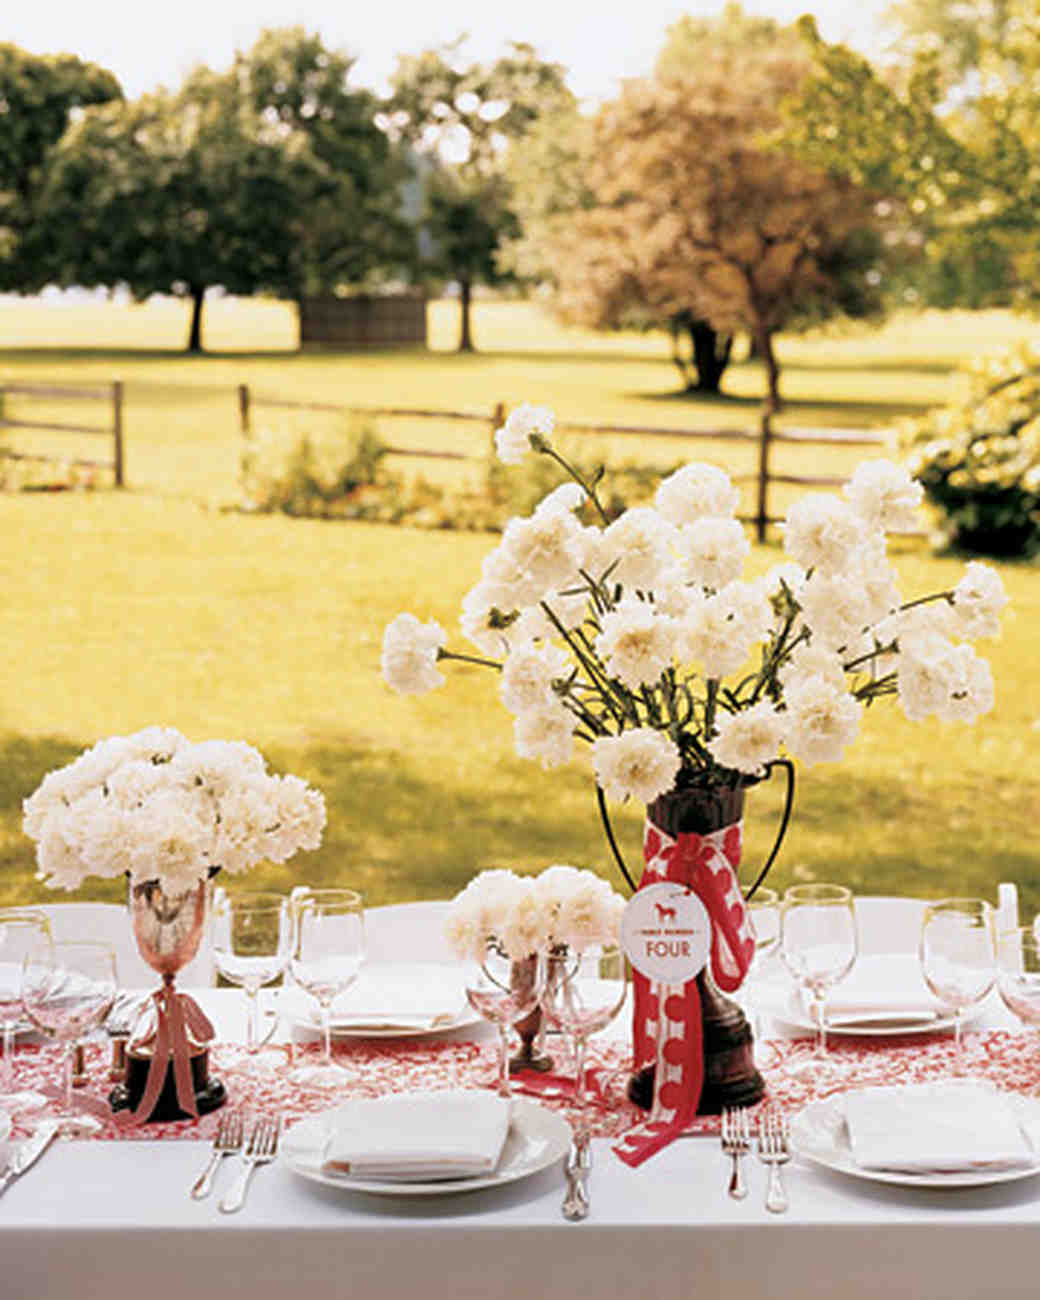 Wedding Centerpieces On A Budget: Affordable Wedding Centerpieces That Don't Look Cheap